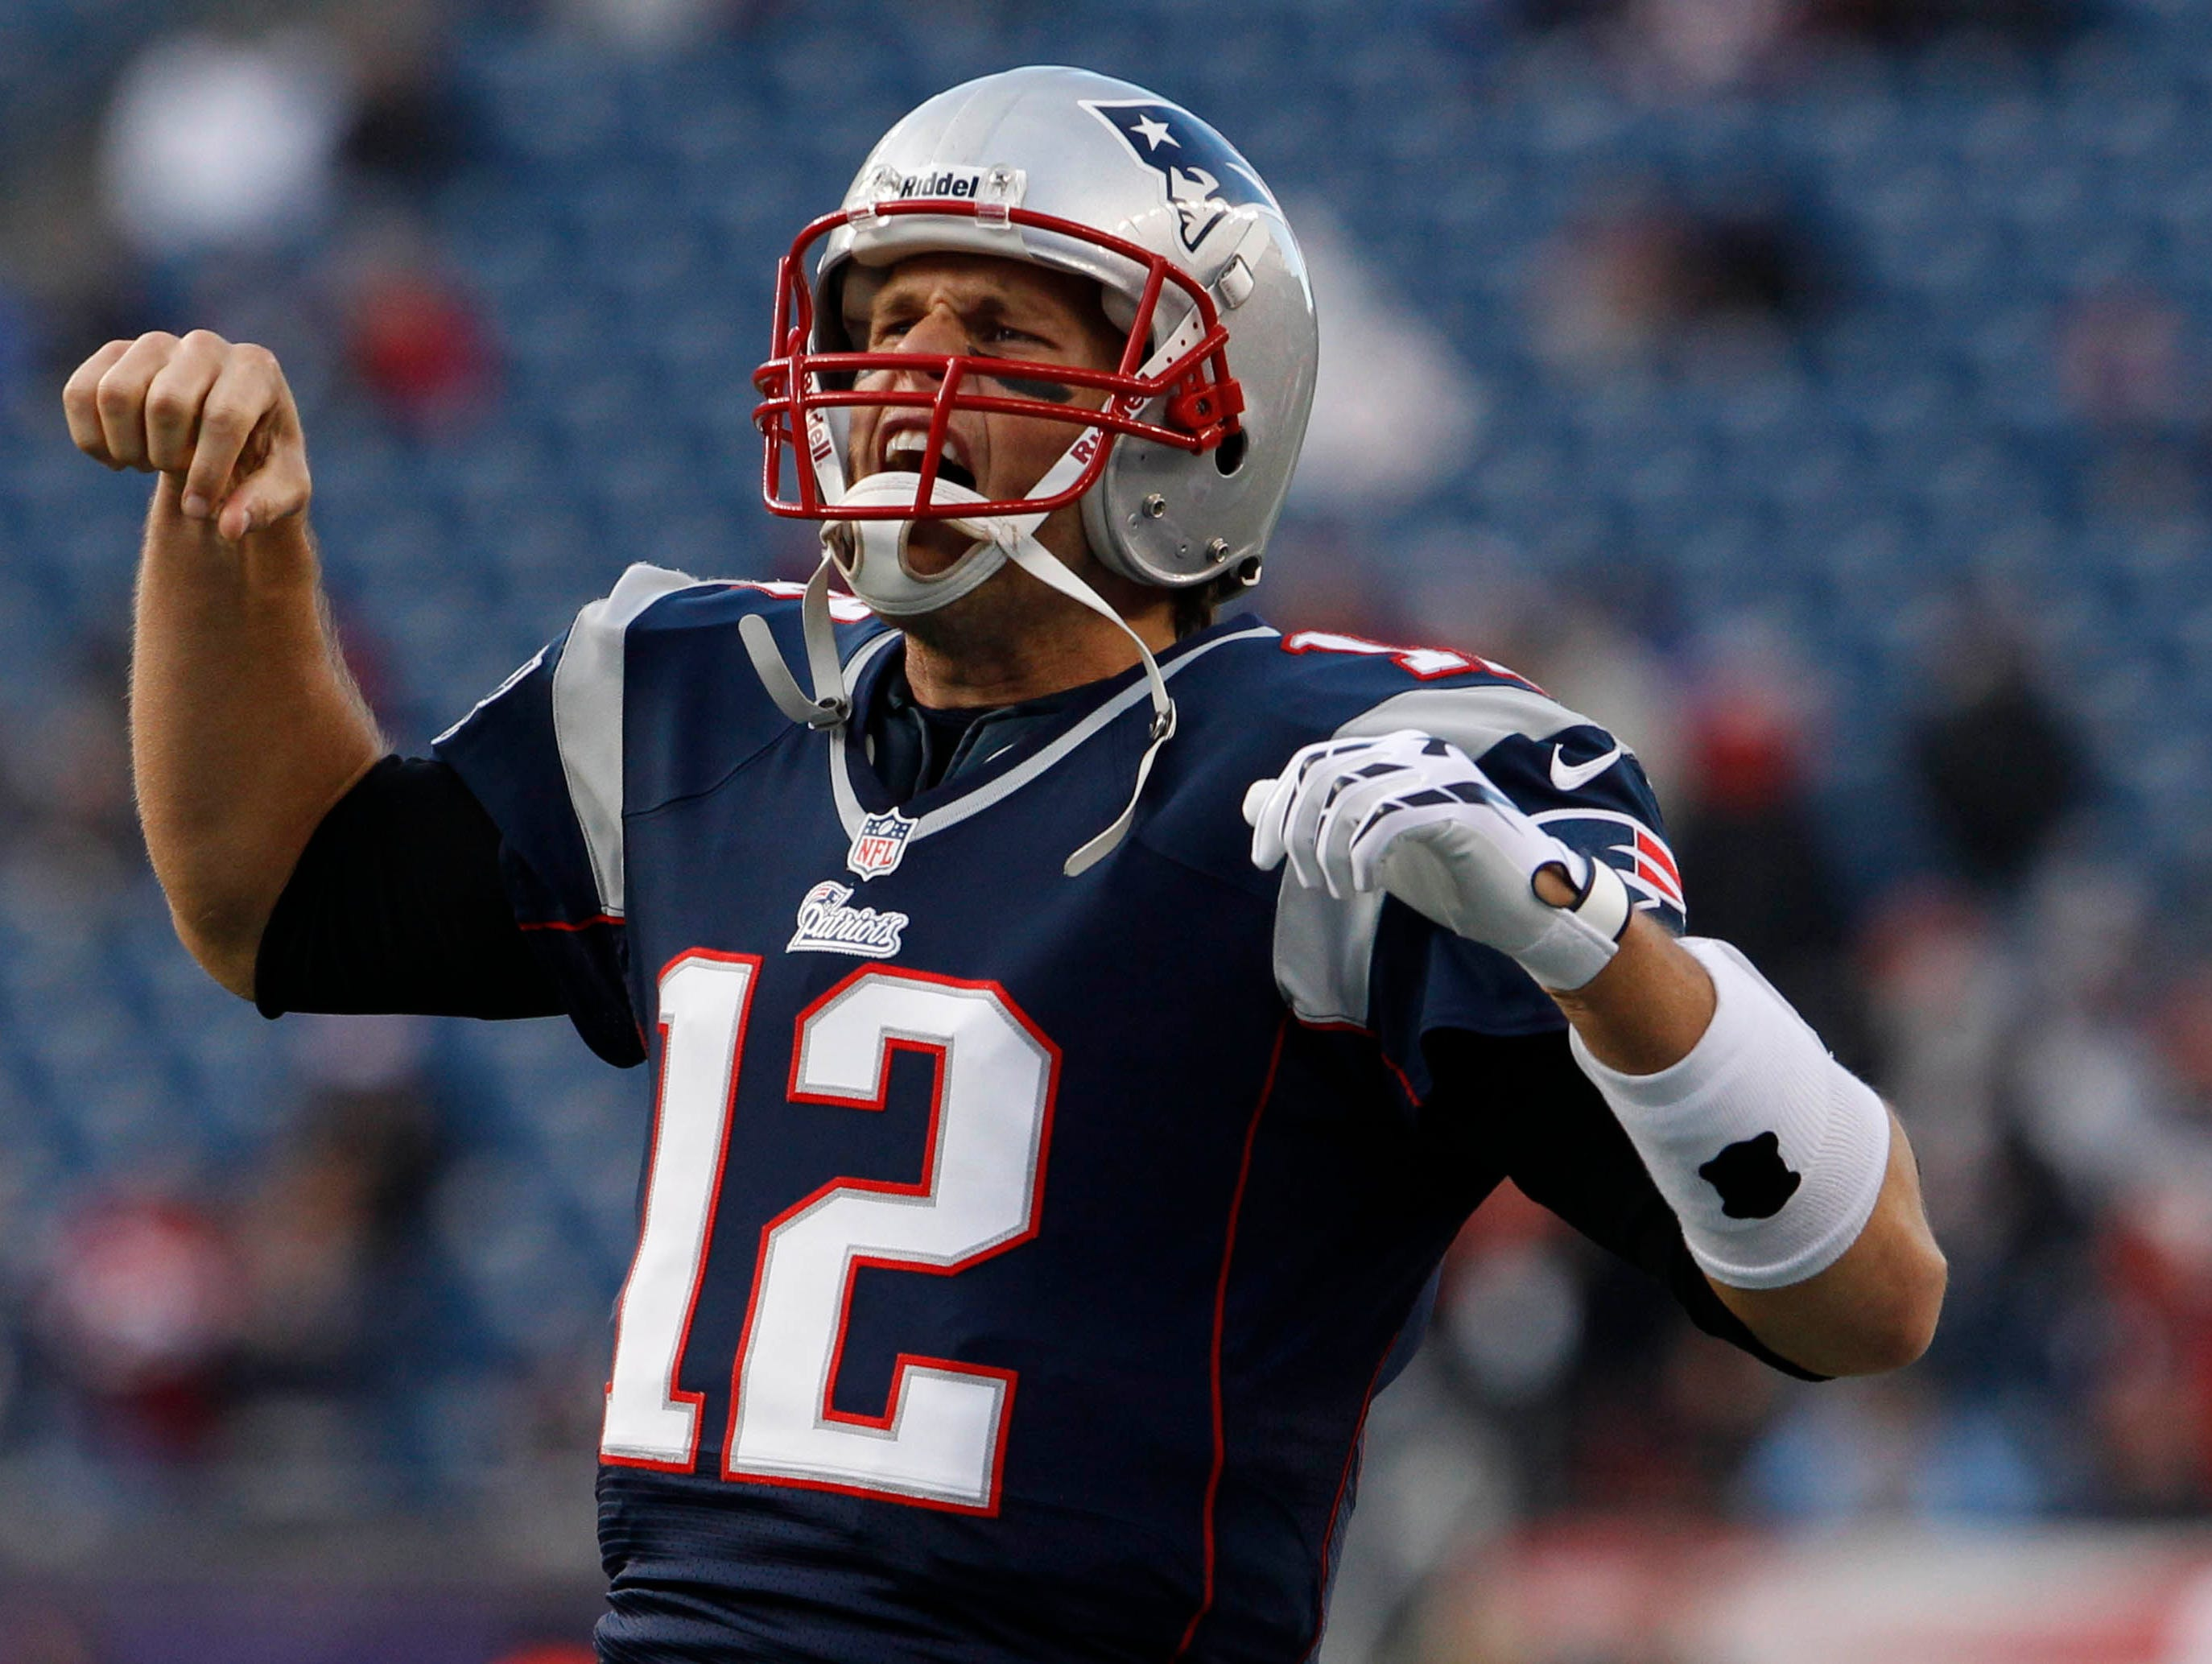 7. Tom Brady, New England Patriots